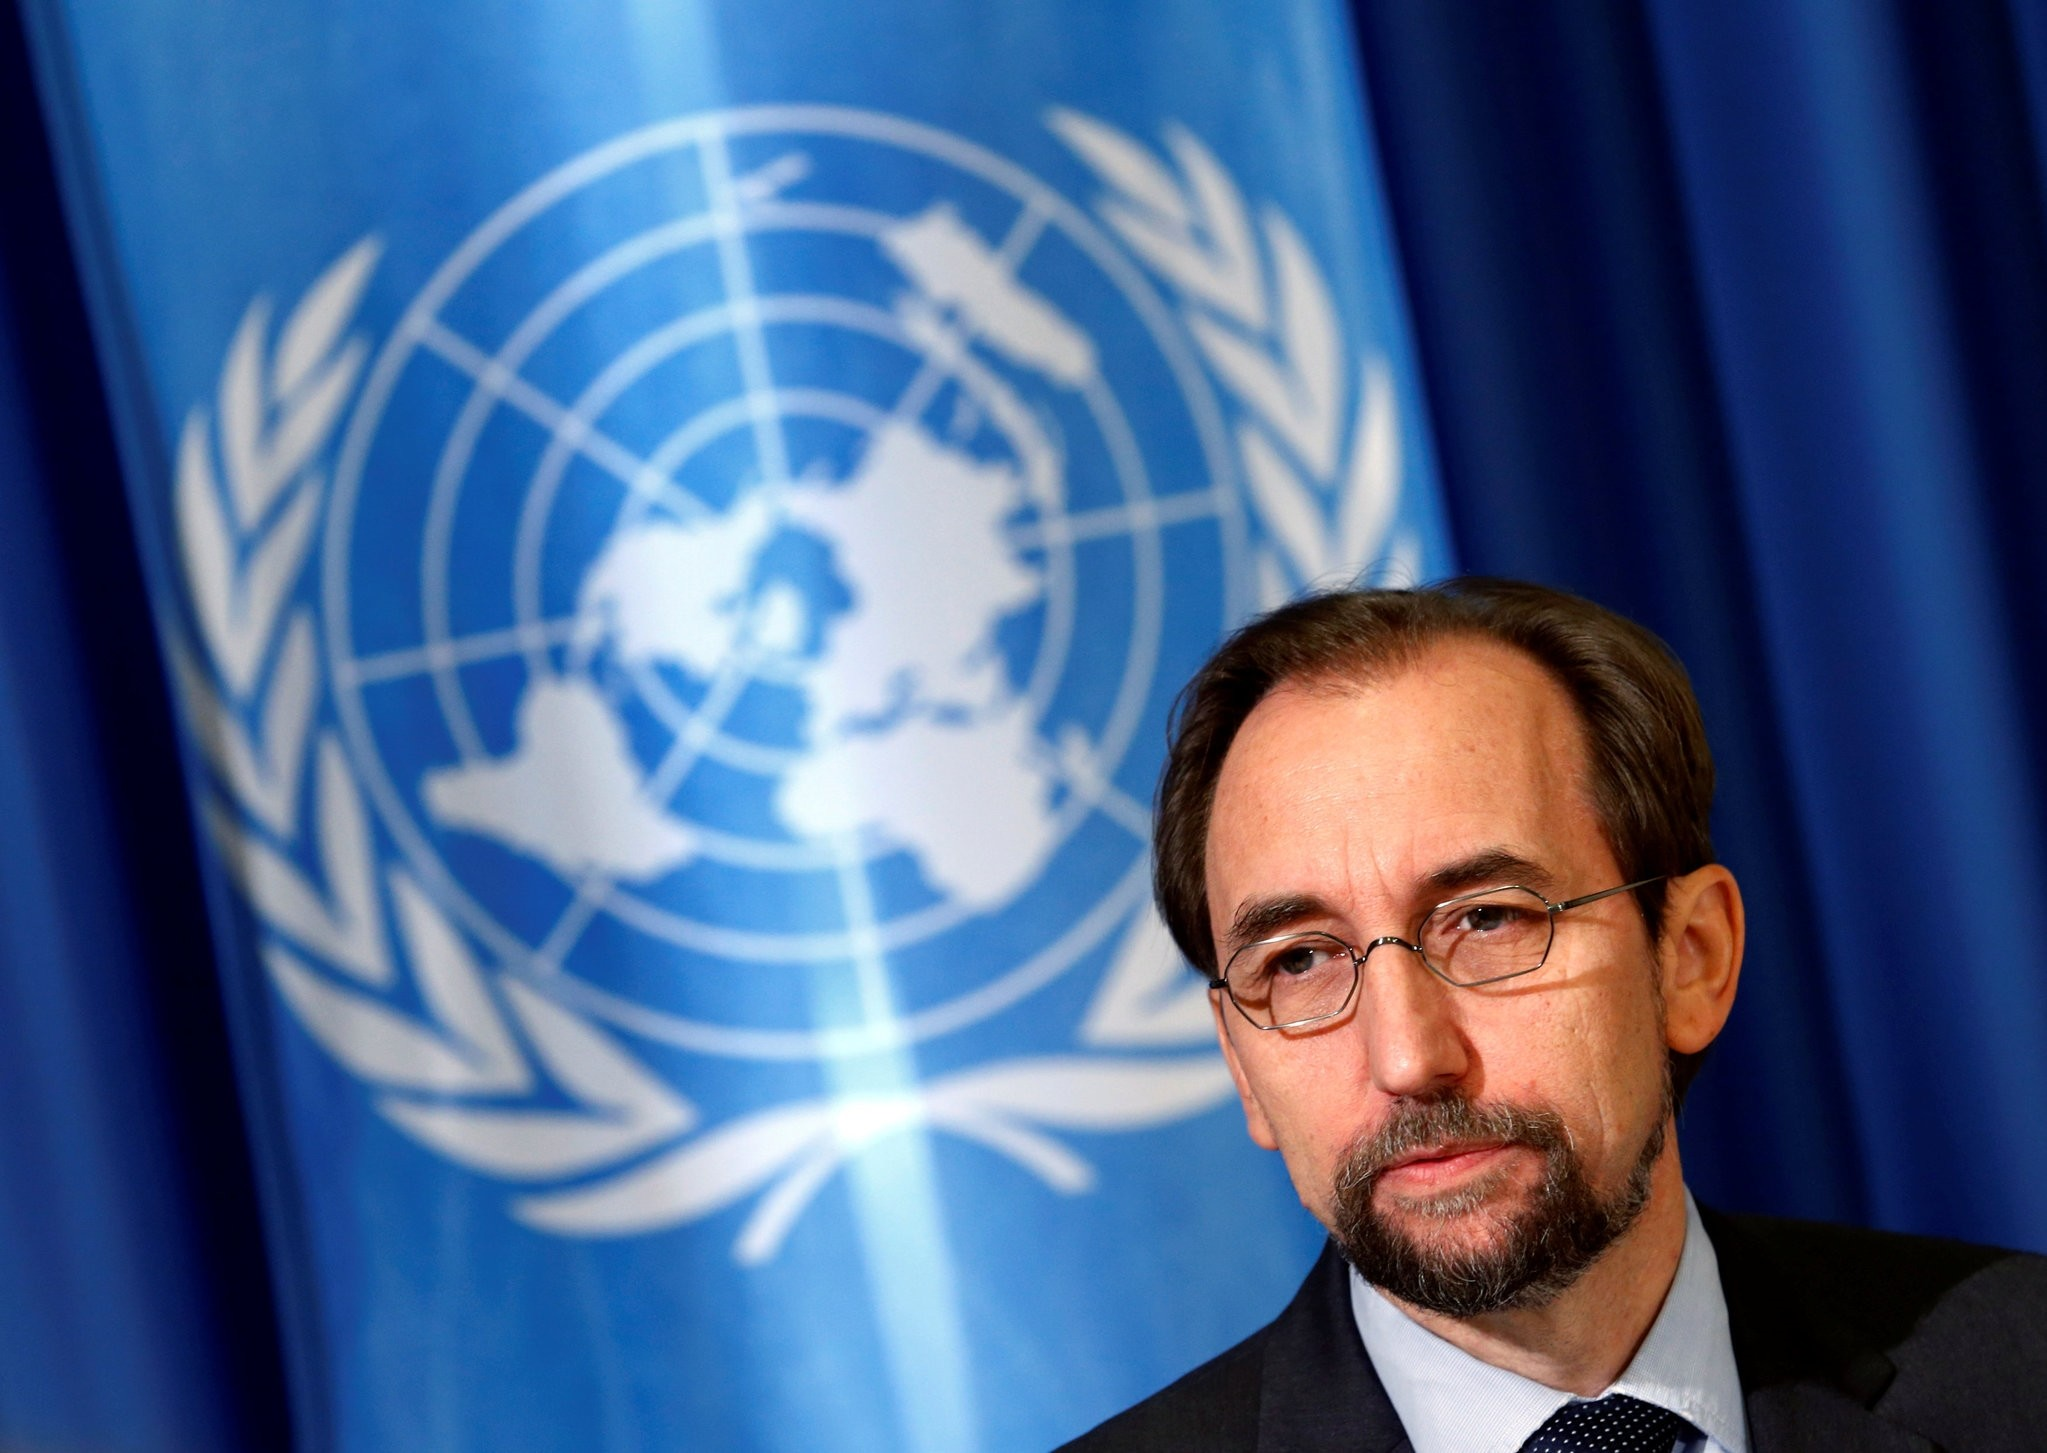 United Nations High Commissioner for Human Rights Zeid Ra'ad Al Hussein attends a media briefing at the U.N. European headquarters in Geneva, Switzerland October 12, 2016. (REUTERS Photo)